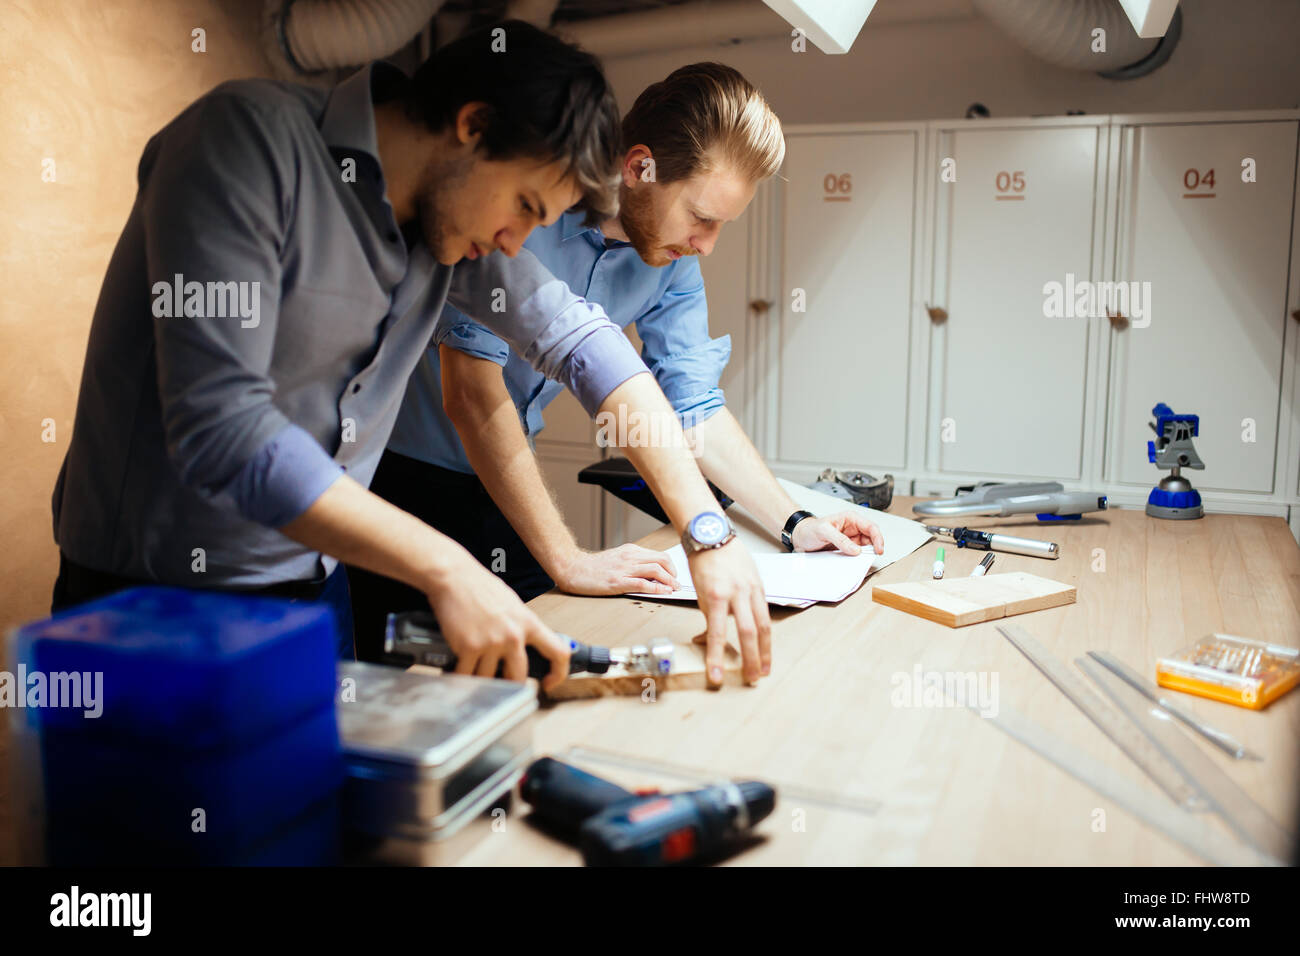 Two designers working together in workshop with precision tools - Stock Image